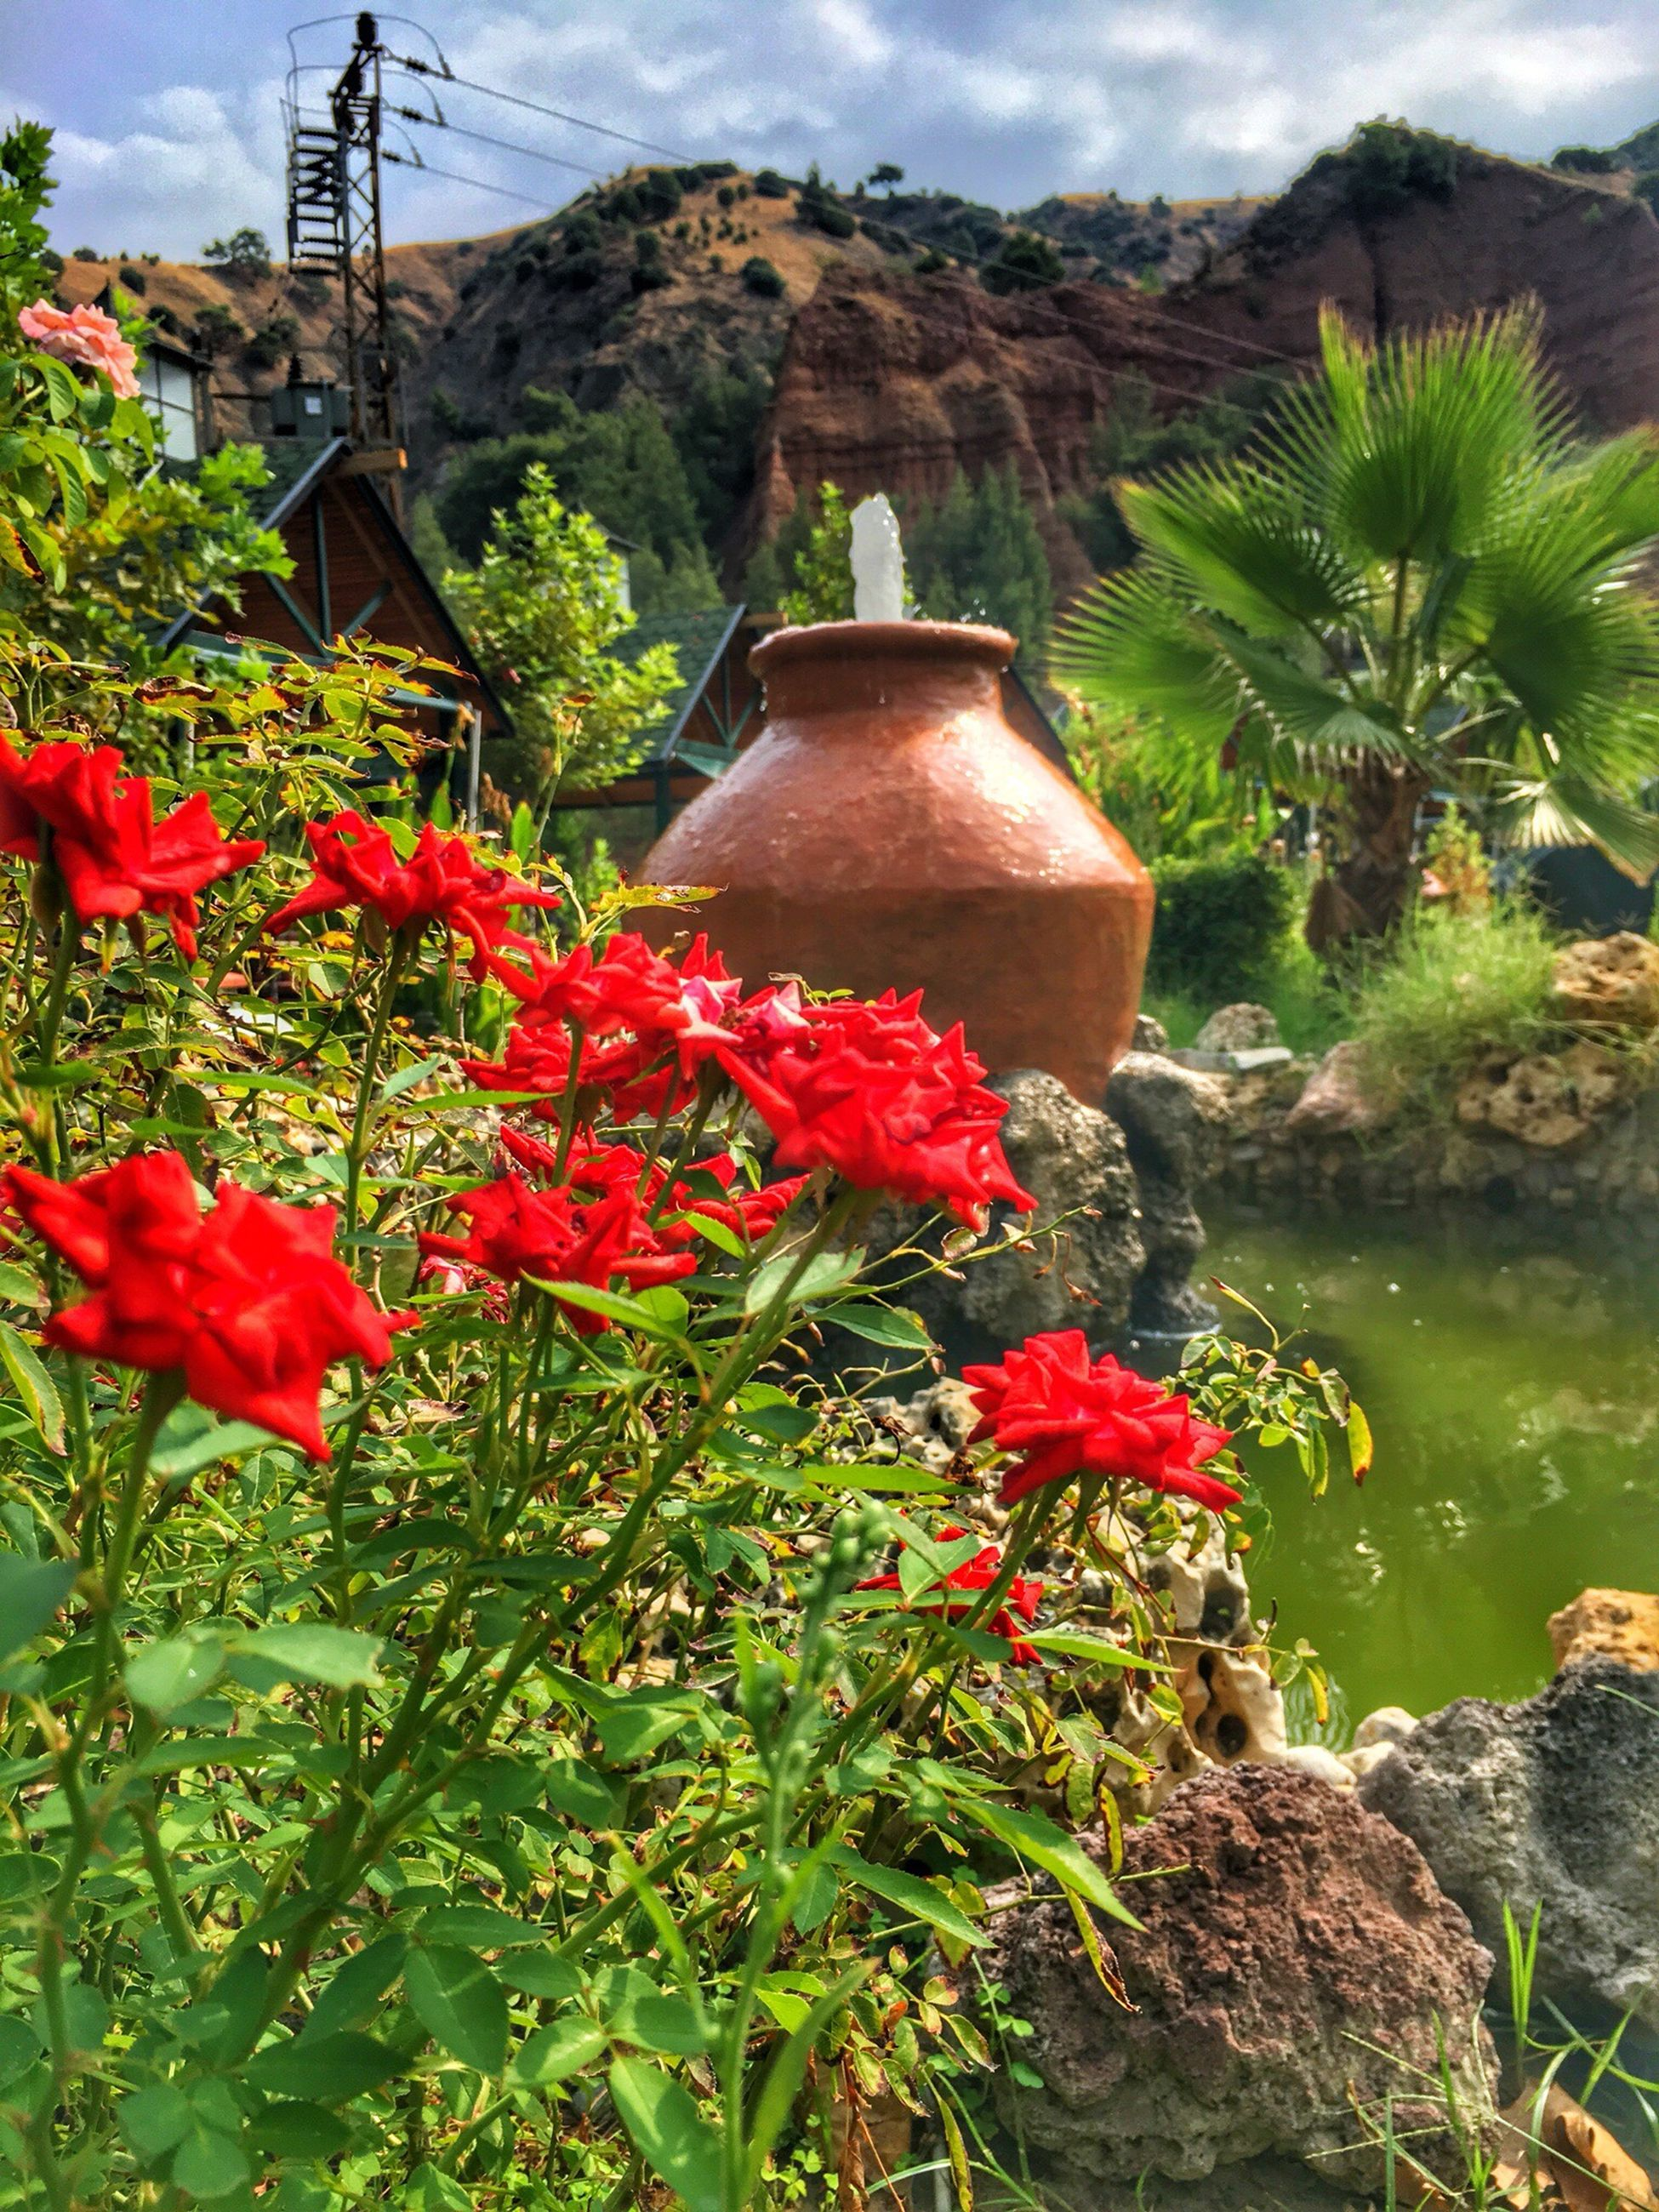 flower, beauty in nature, plant, growth, freshness, water, nature, scenics, red, fragility, tranquility, day, mountain, green color, vacations, tranquil scene, outdoors, vibrant color, in bloom, blossom, tourism, botany, tourist resort, rock formation